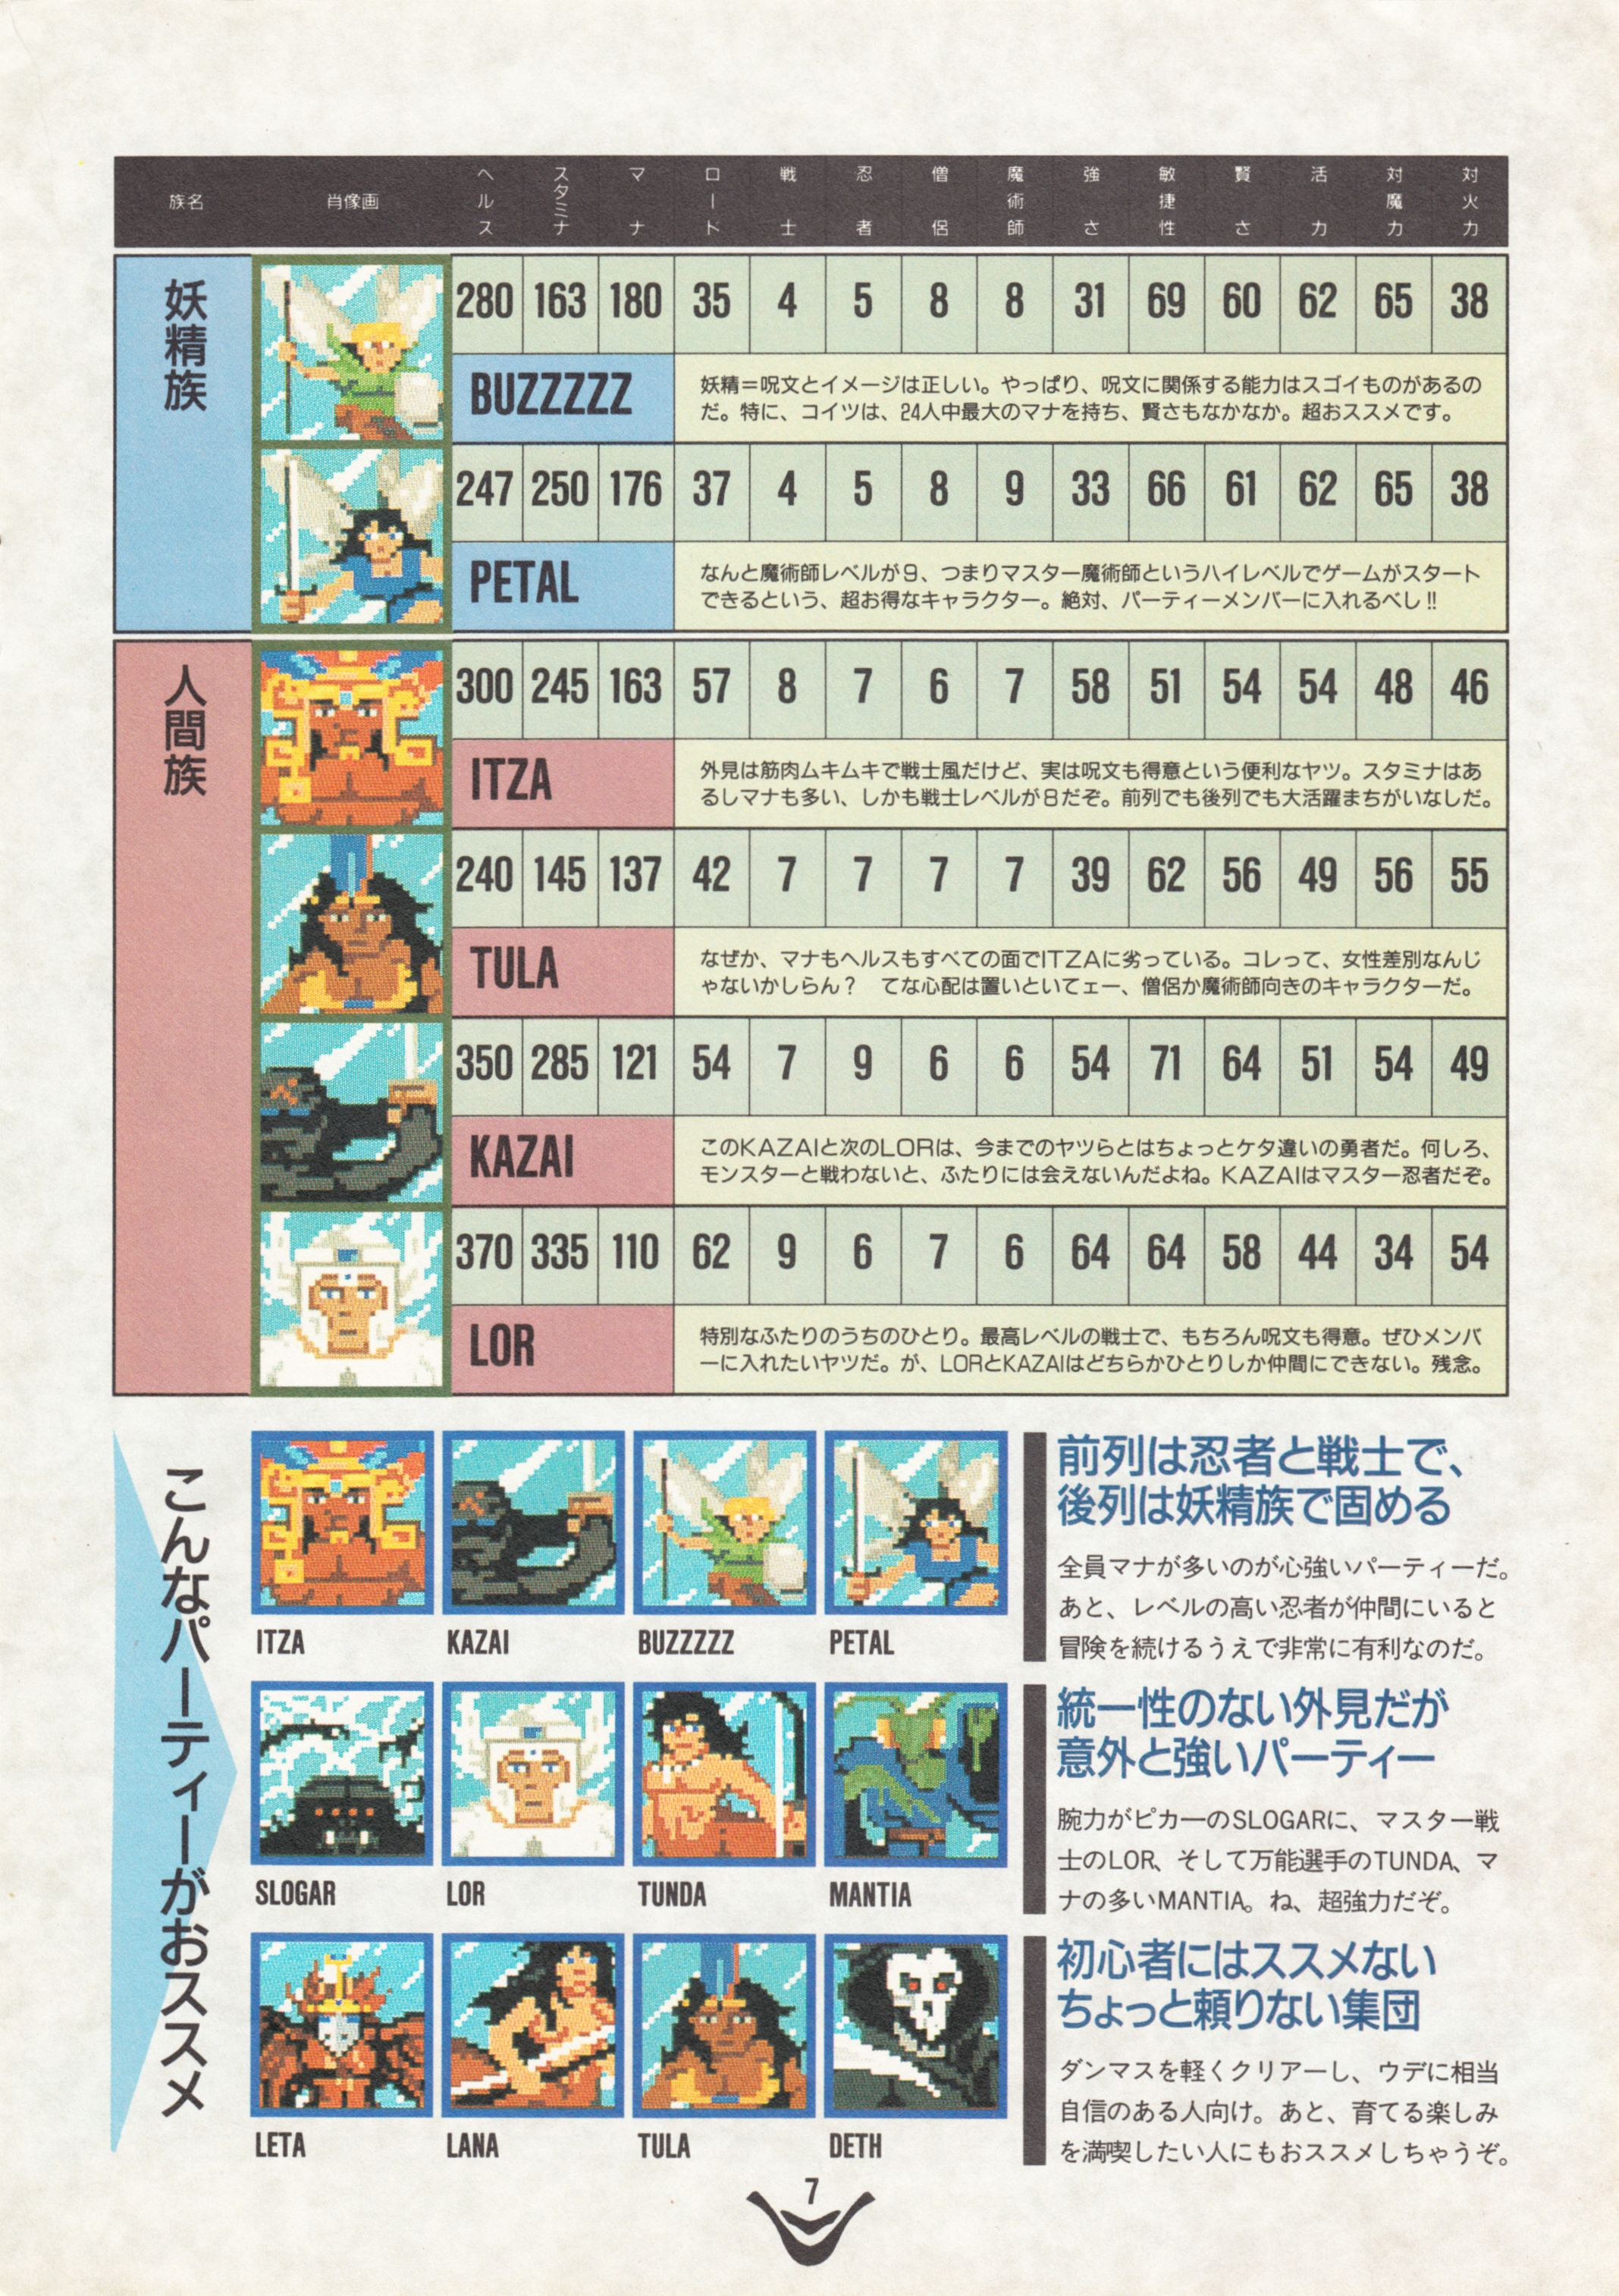 Special Supplement 1 - Chaos Strikes Back Guide published in Japanese magazine 'Login', Vol 9 No 24 21 December 1990, Page 7